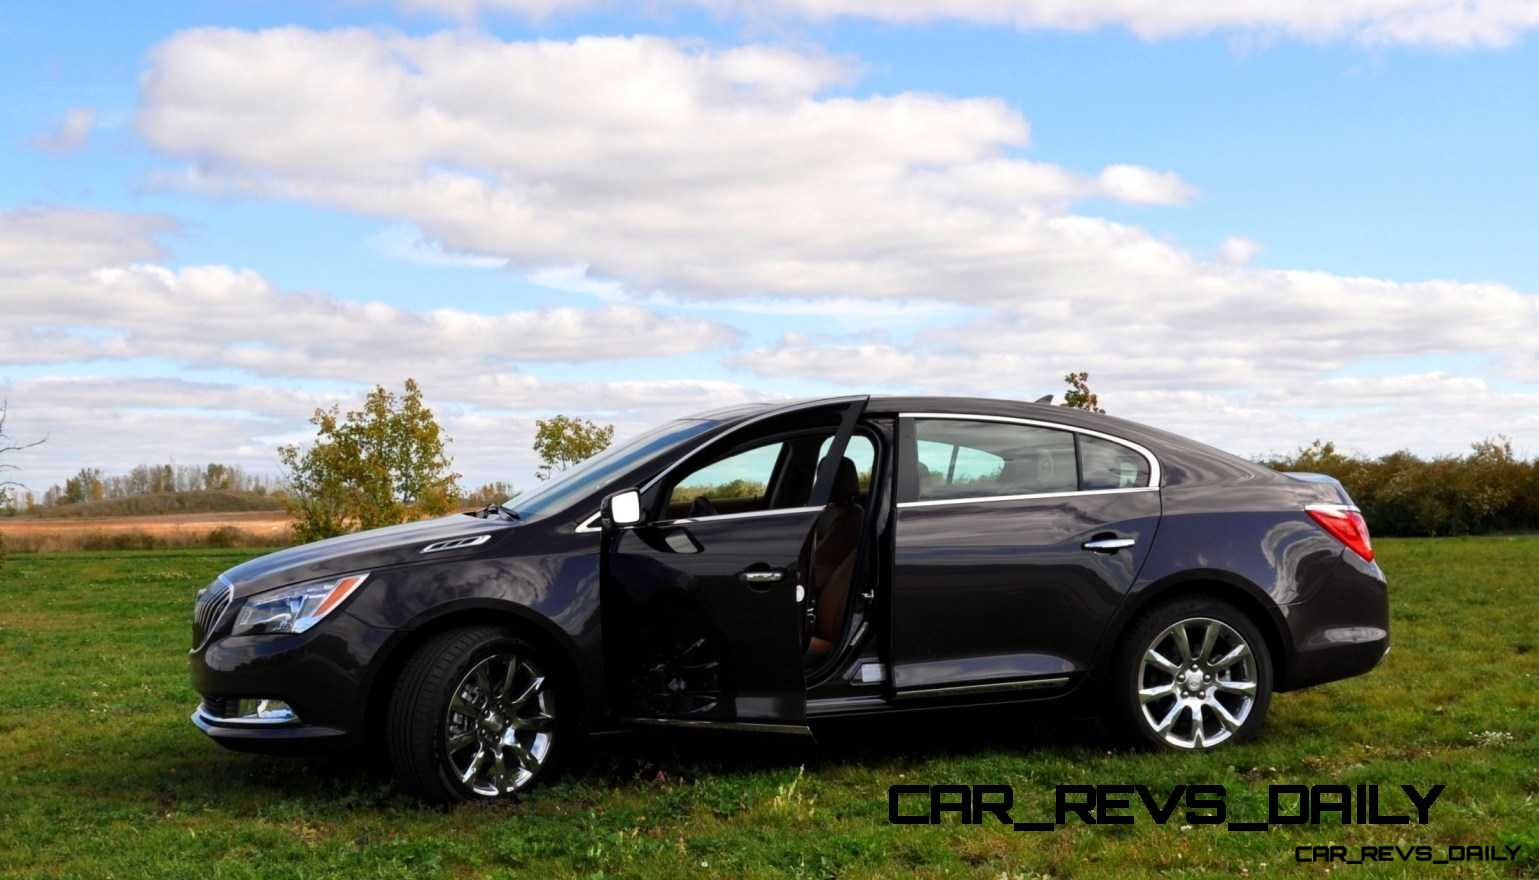 Driven Car Review - 2014 Buick LaCrosse Is Huge, Smooth and Silent4